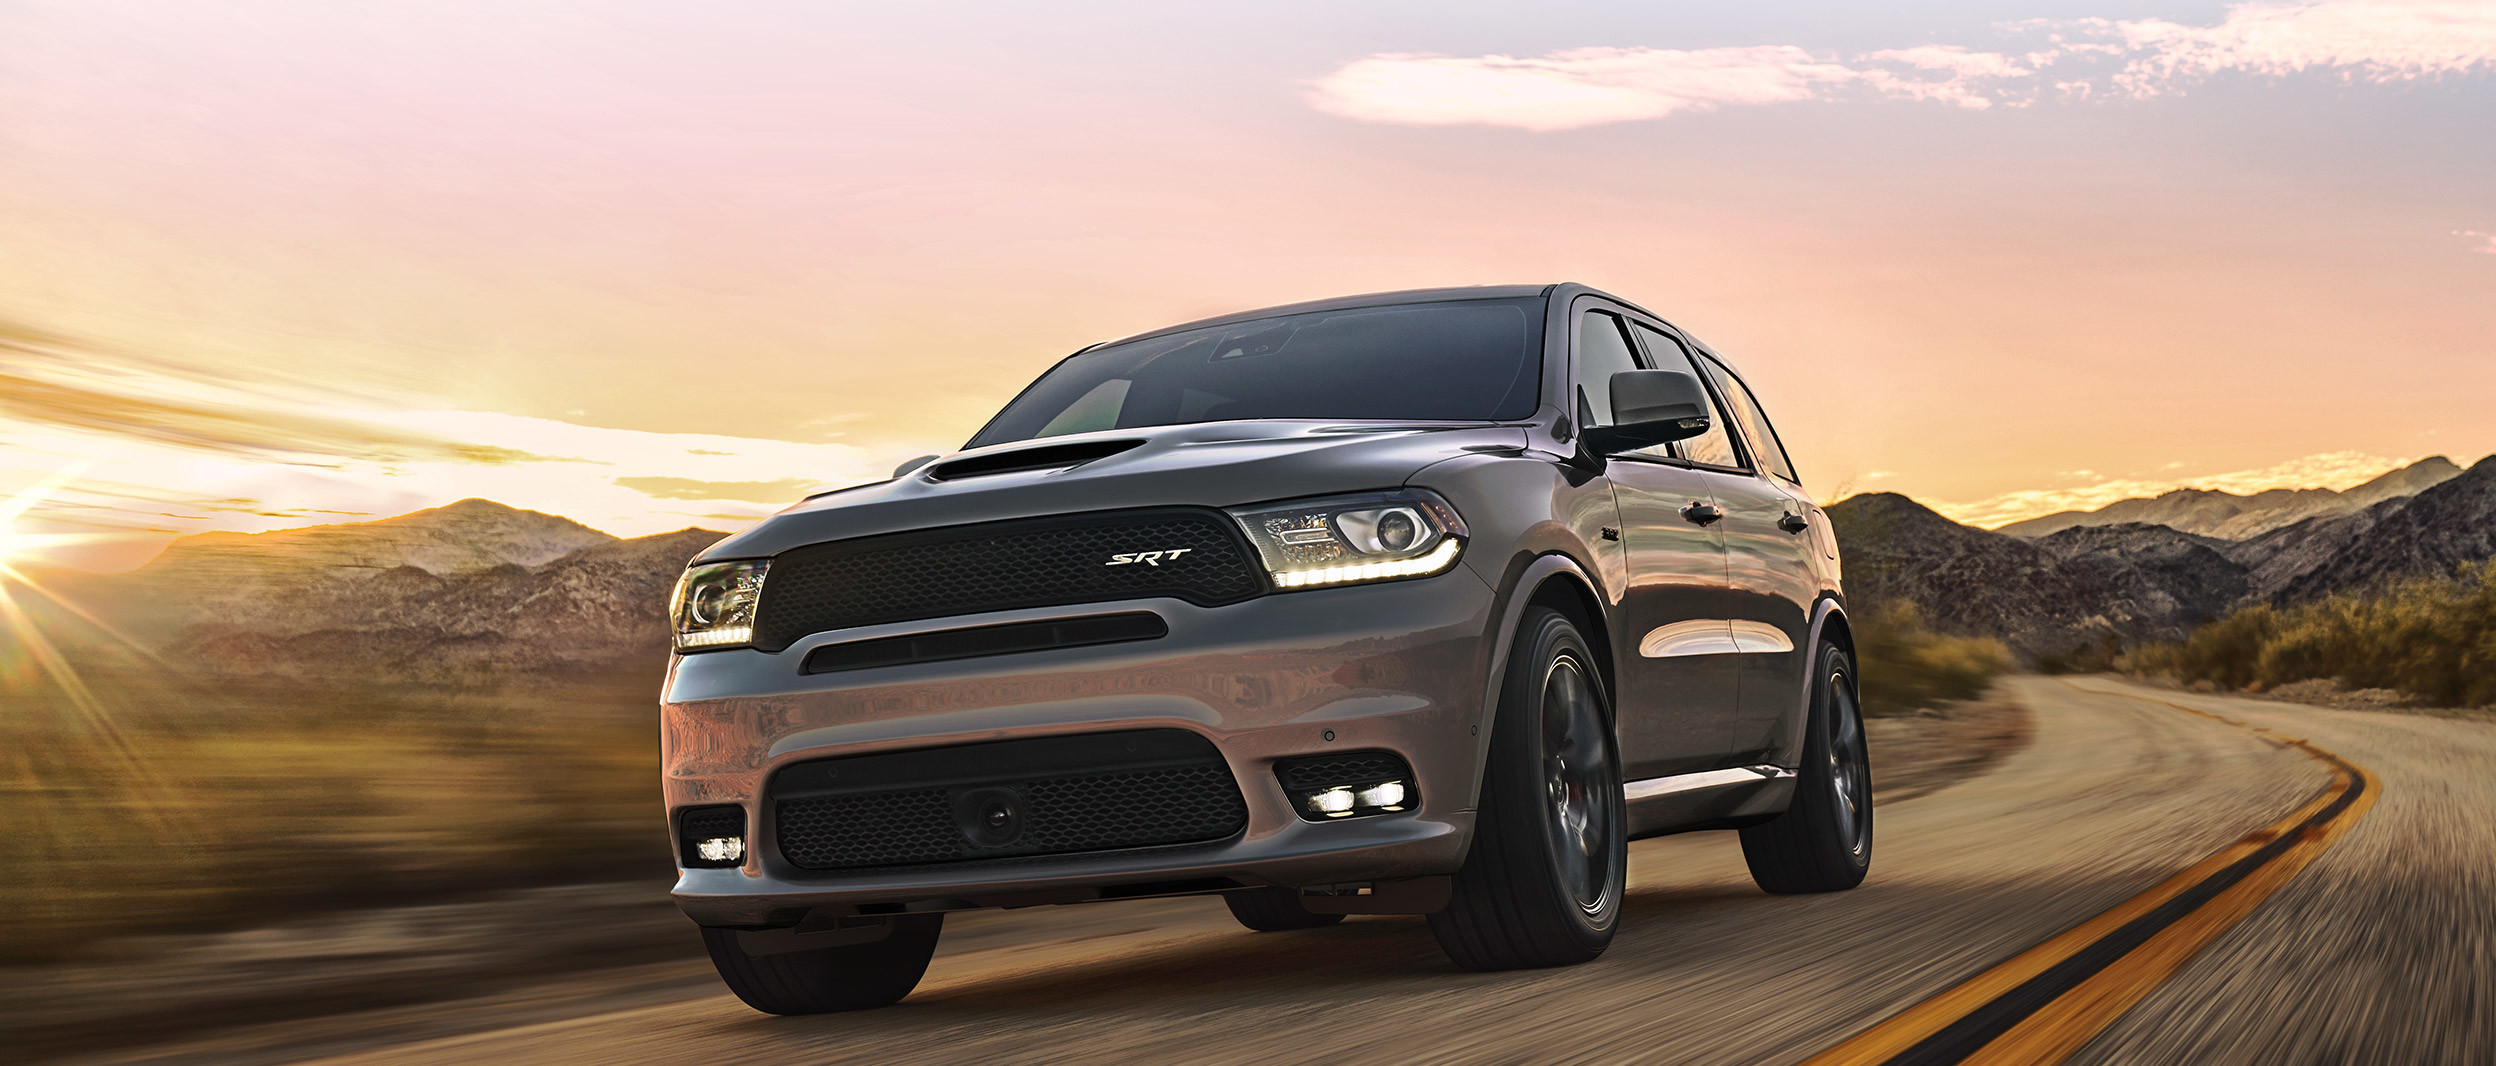 Grey 2020 Dodge Durango being driven on a freeway through mountains.